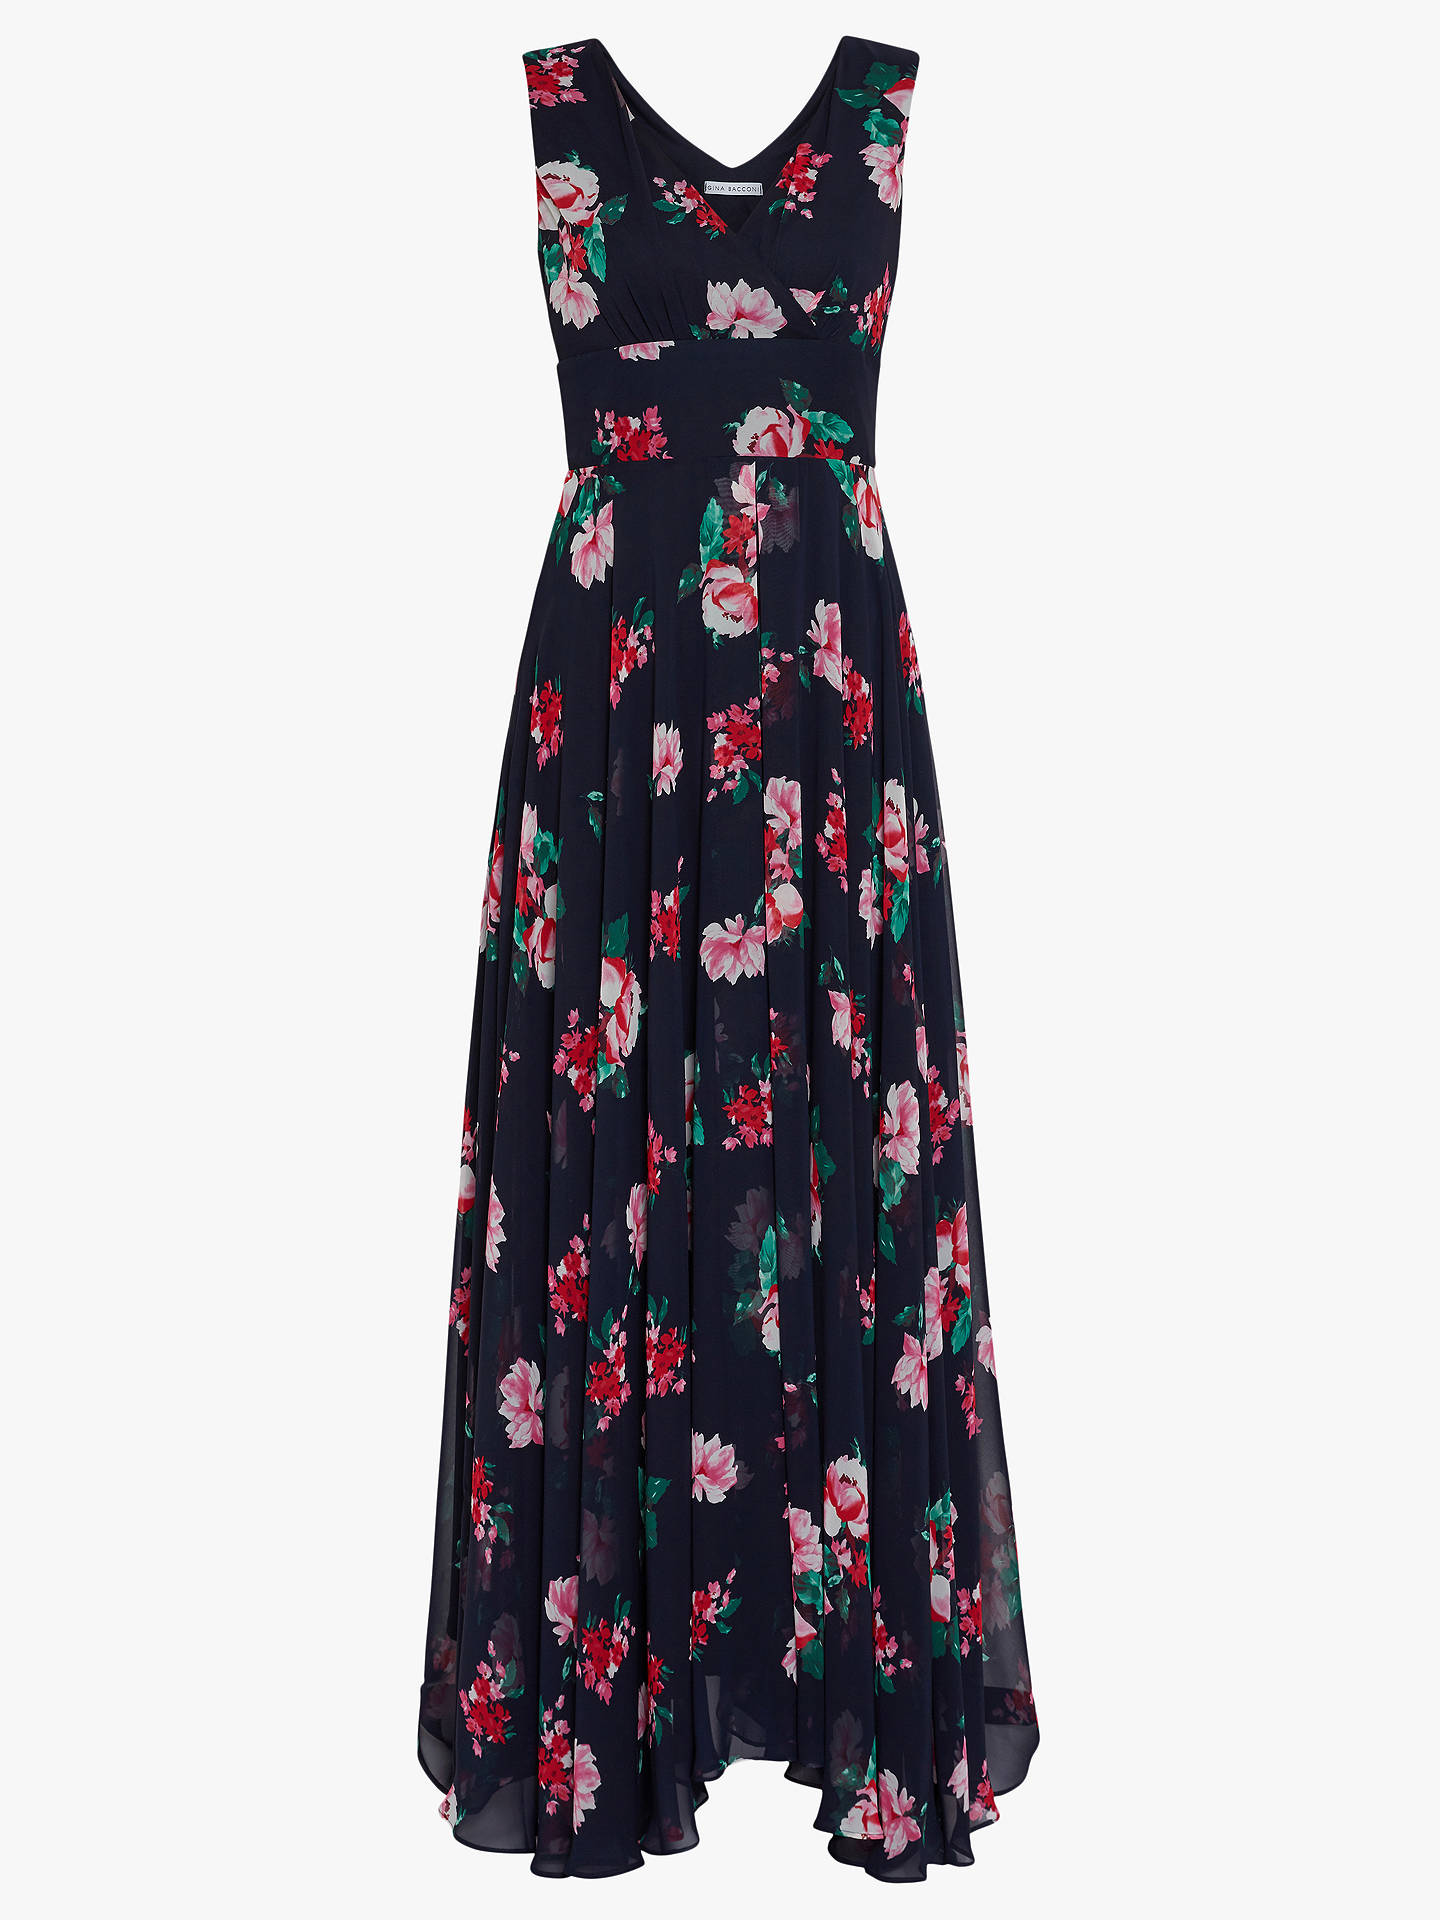 Buy Gina Bacconi Edana Floral Maxi Dress, Black/Multi, 16 Online at johnlewis.com